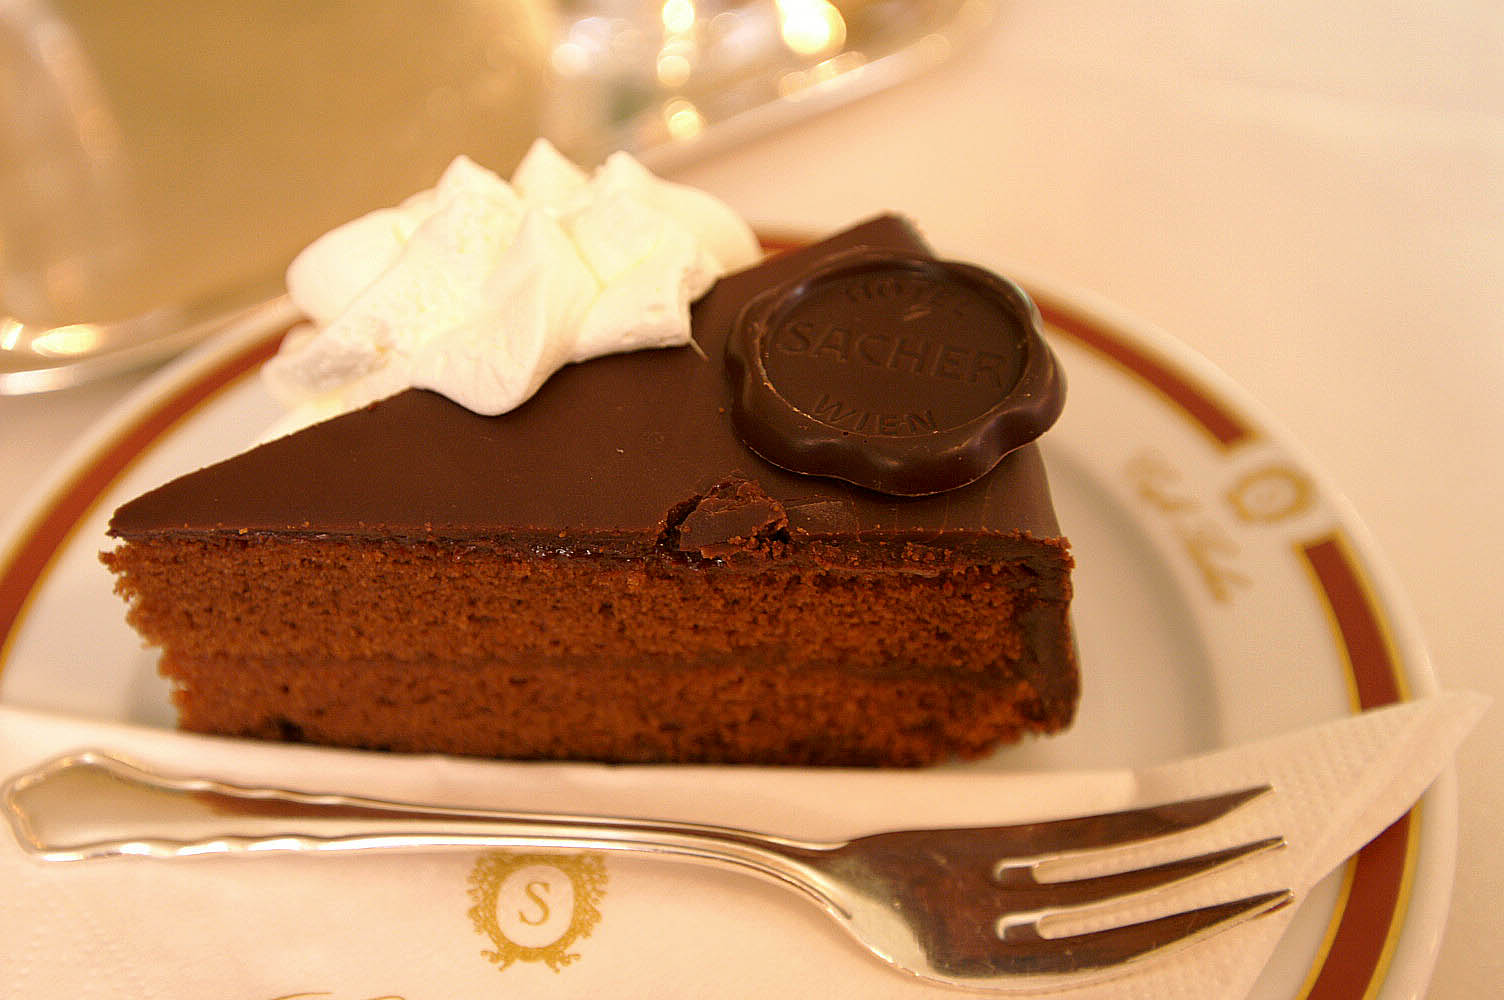 related recipes sachertorte sachertorte cake history eduard sacher ...